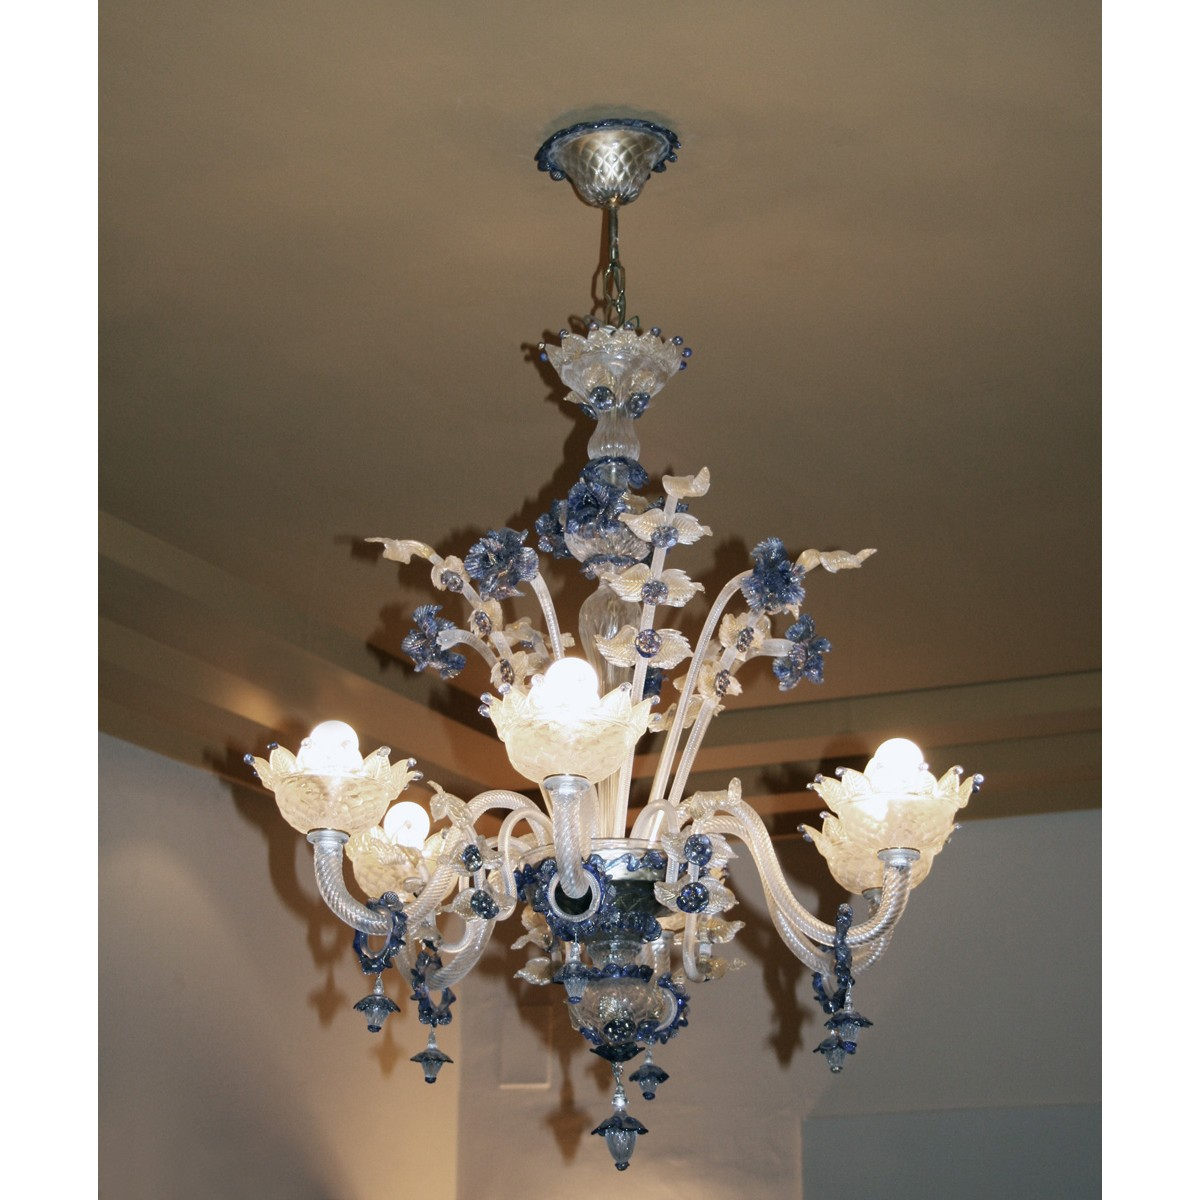 _ Murano Suspension Lamp Outlet | Desout.com